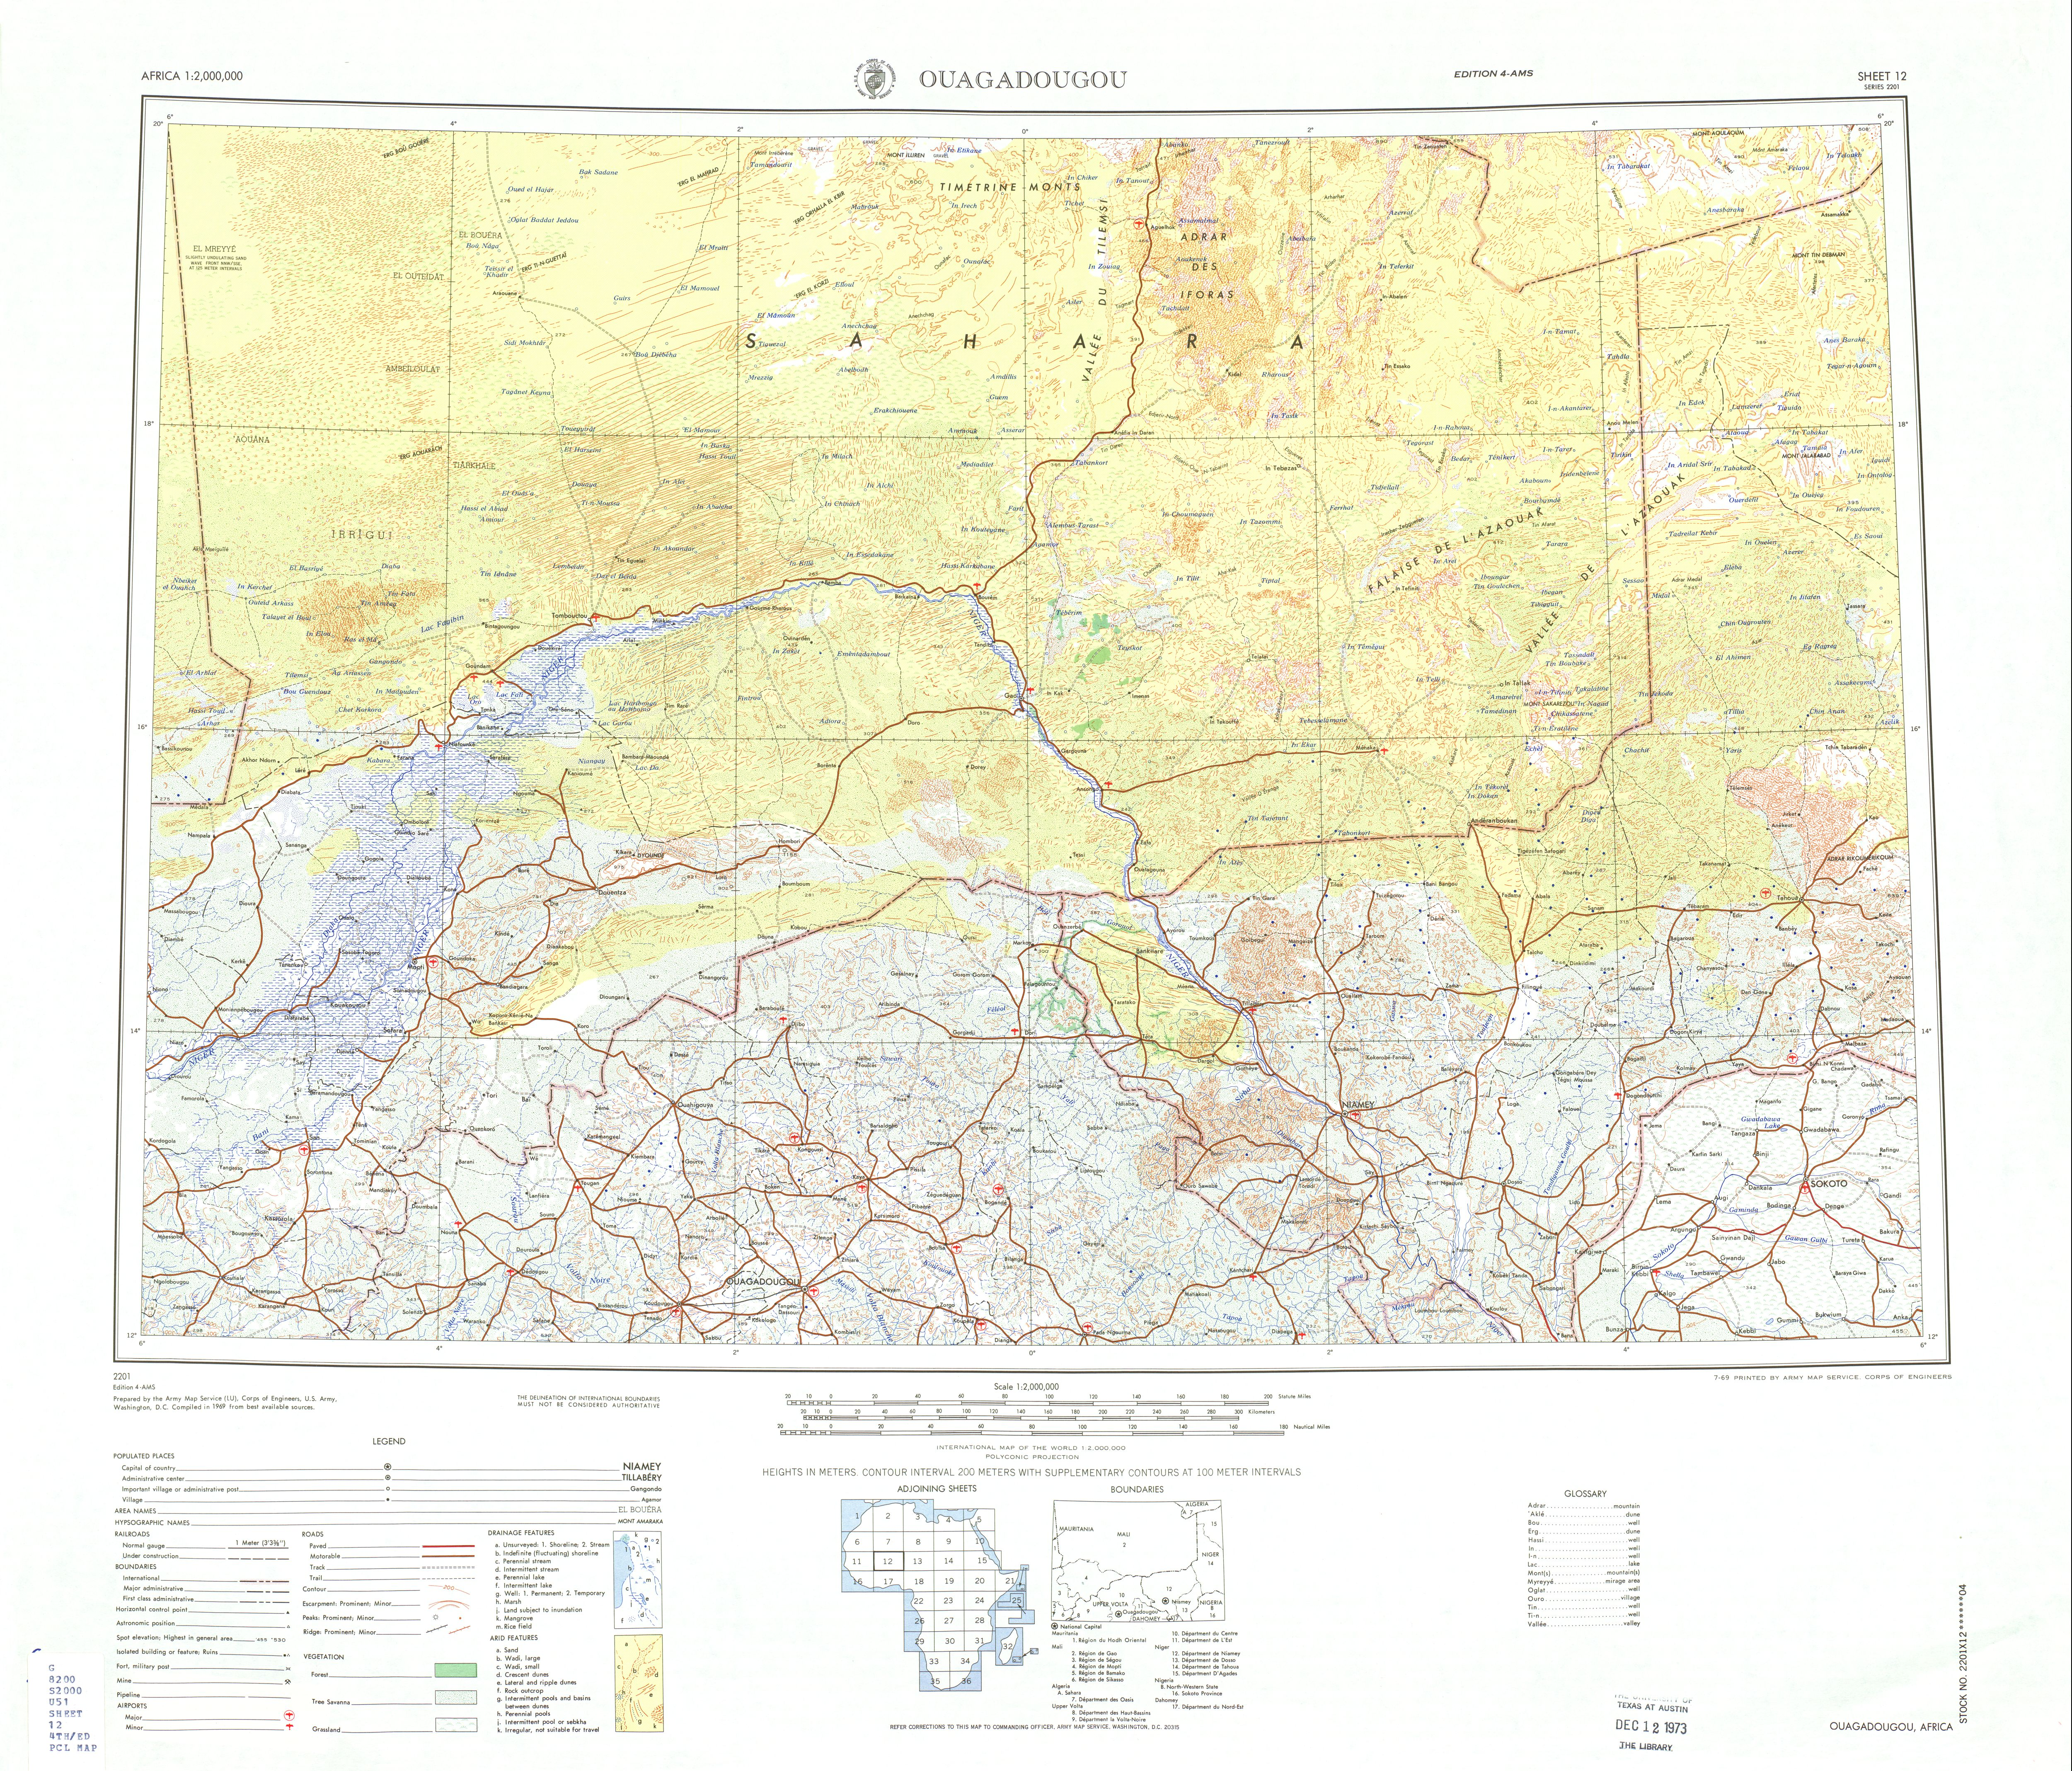 Ouagadougou Topographic Sheet Map, Africa 1969